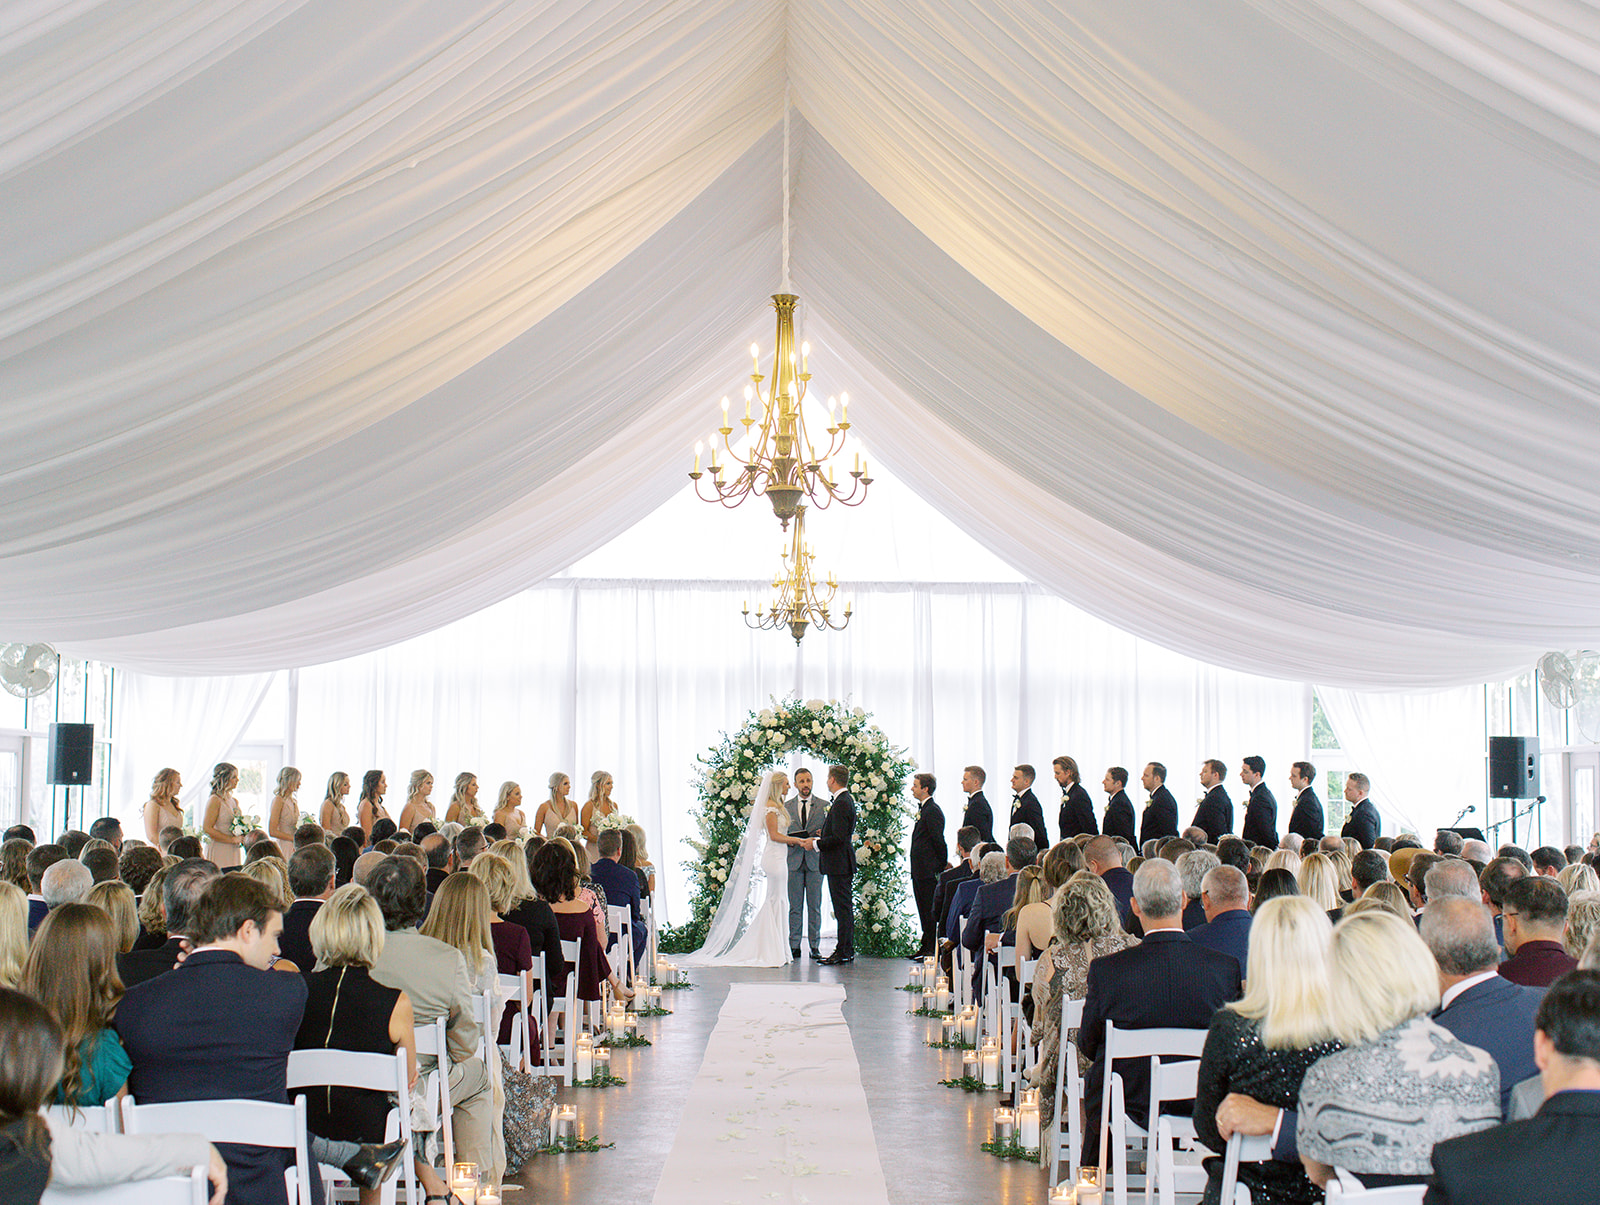 Bride and groom standing at alter of Ritz Charles wedding ceremony